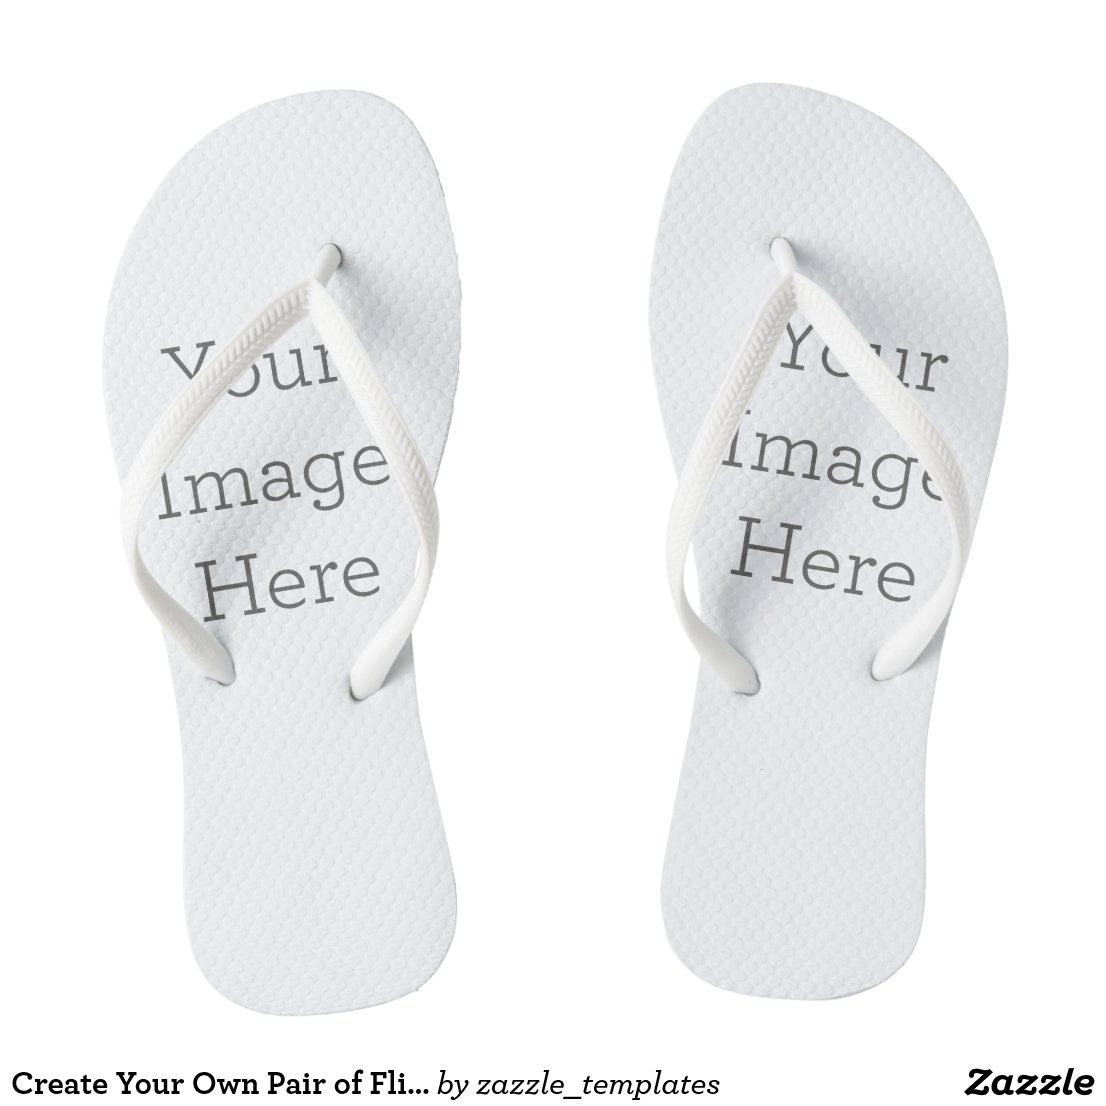 Create Your Own Pair of Flip Flops